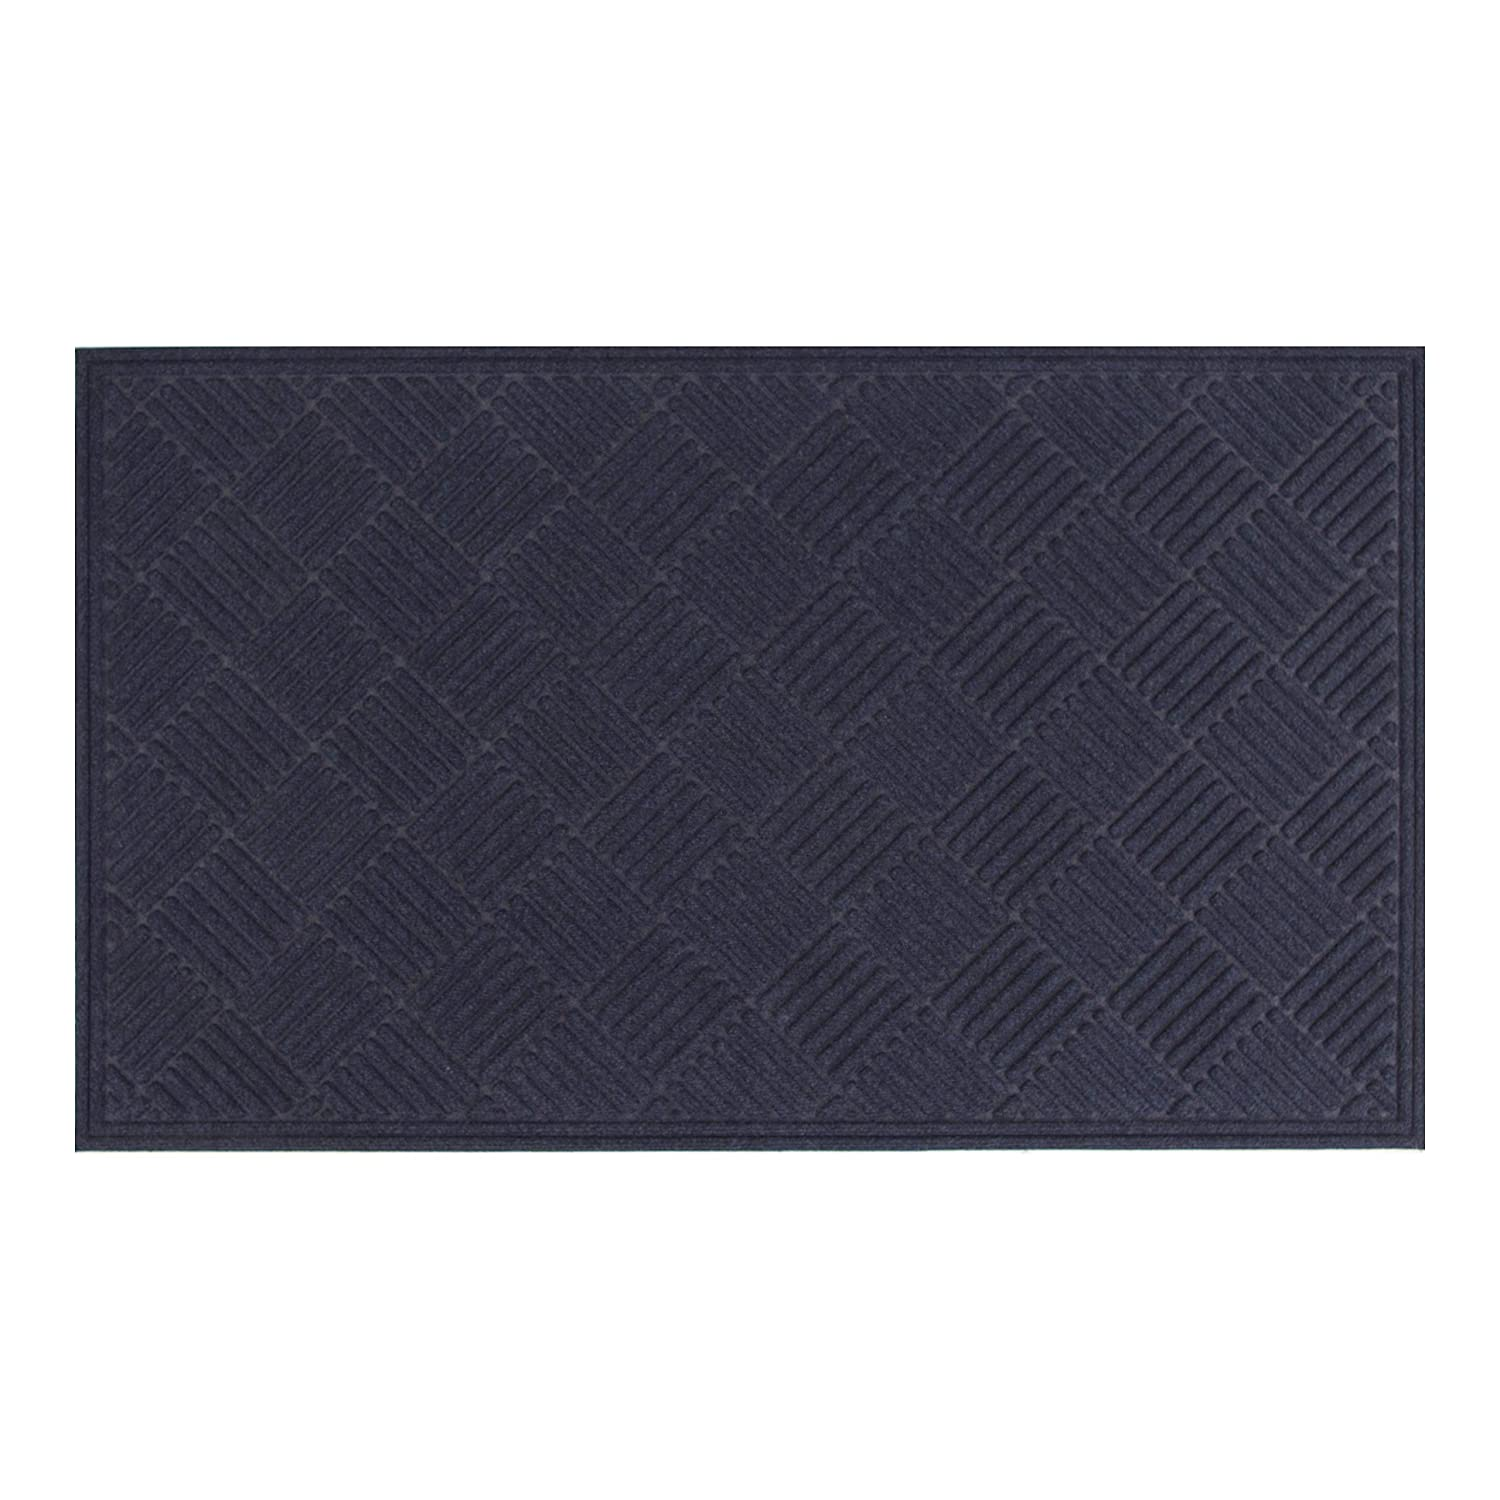 AmazonBasics Molded Carpet Recycled Rubber Commercial Scraper Entrance Mat Diamond Pattern 2x3 Blue